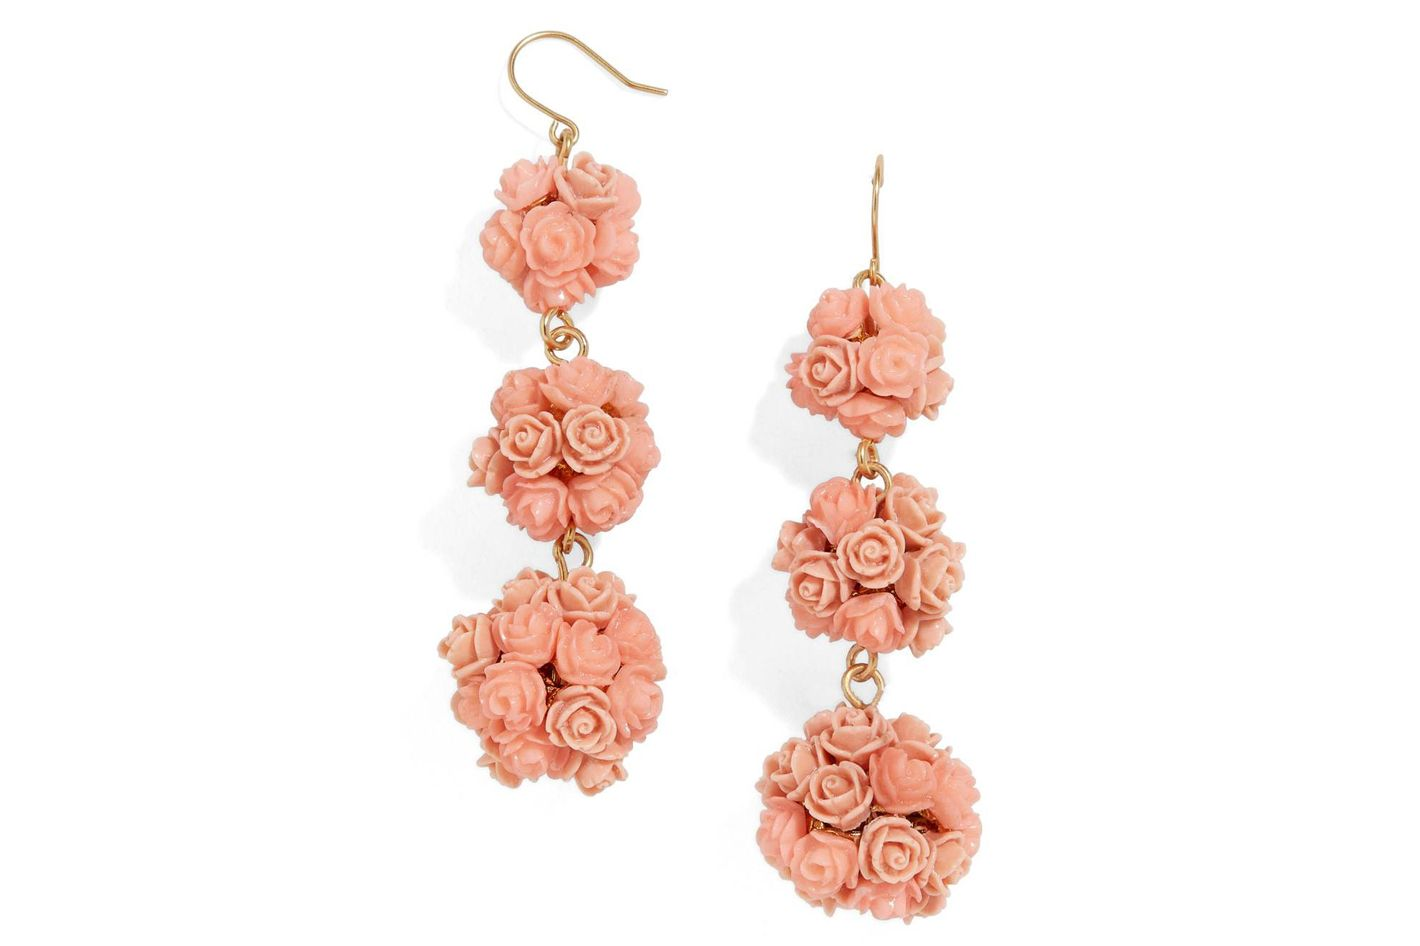 Floral Crispin Earrings